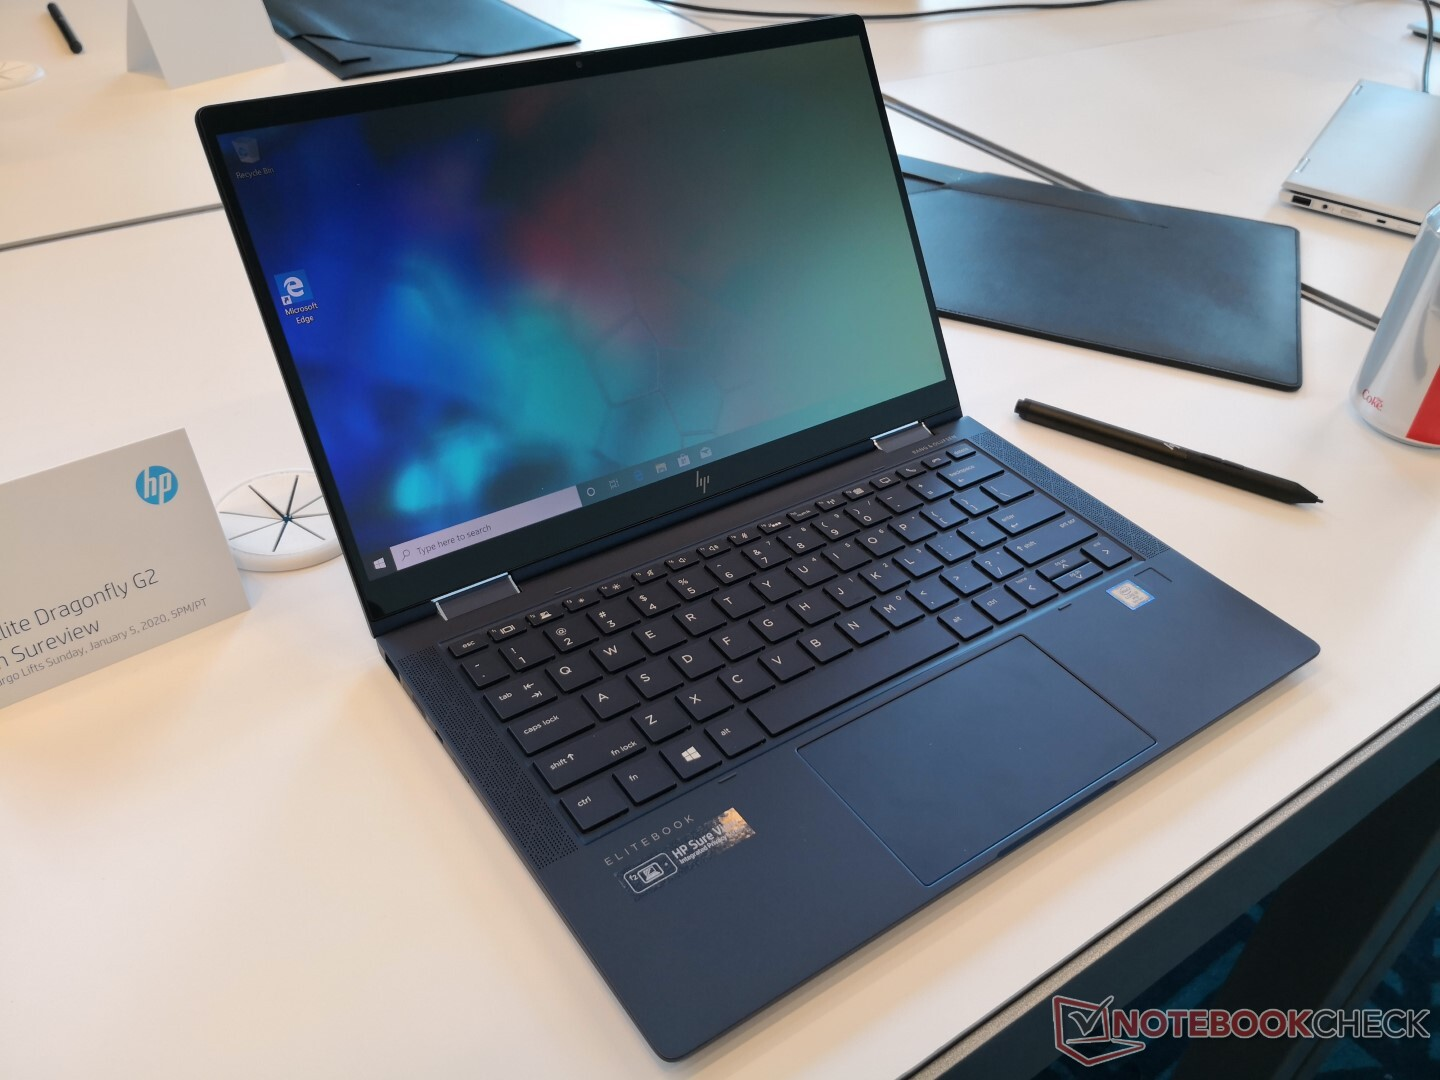 HP's Elite Dragonfly Laptop Is Getting A Serious Security Update